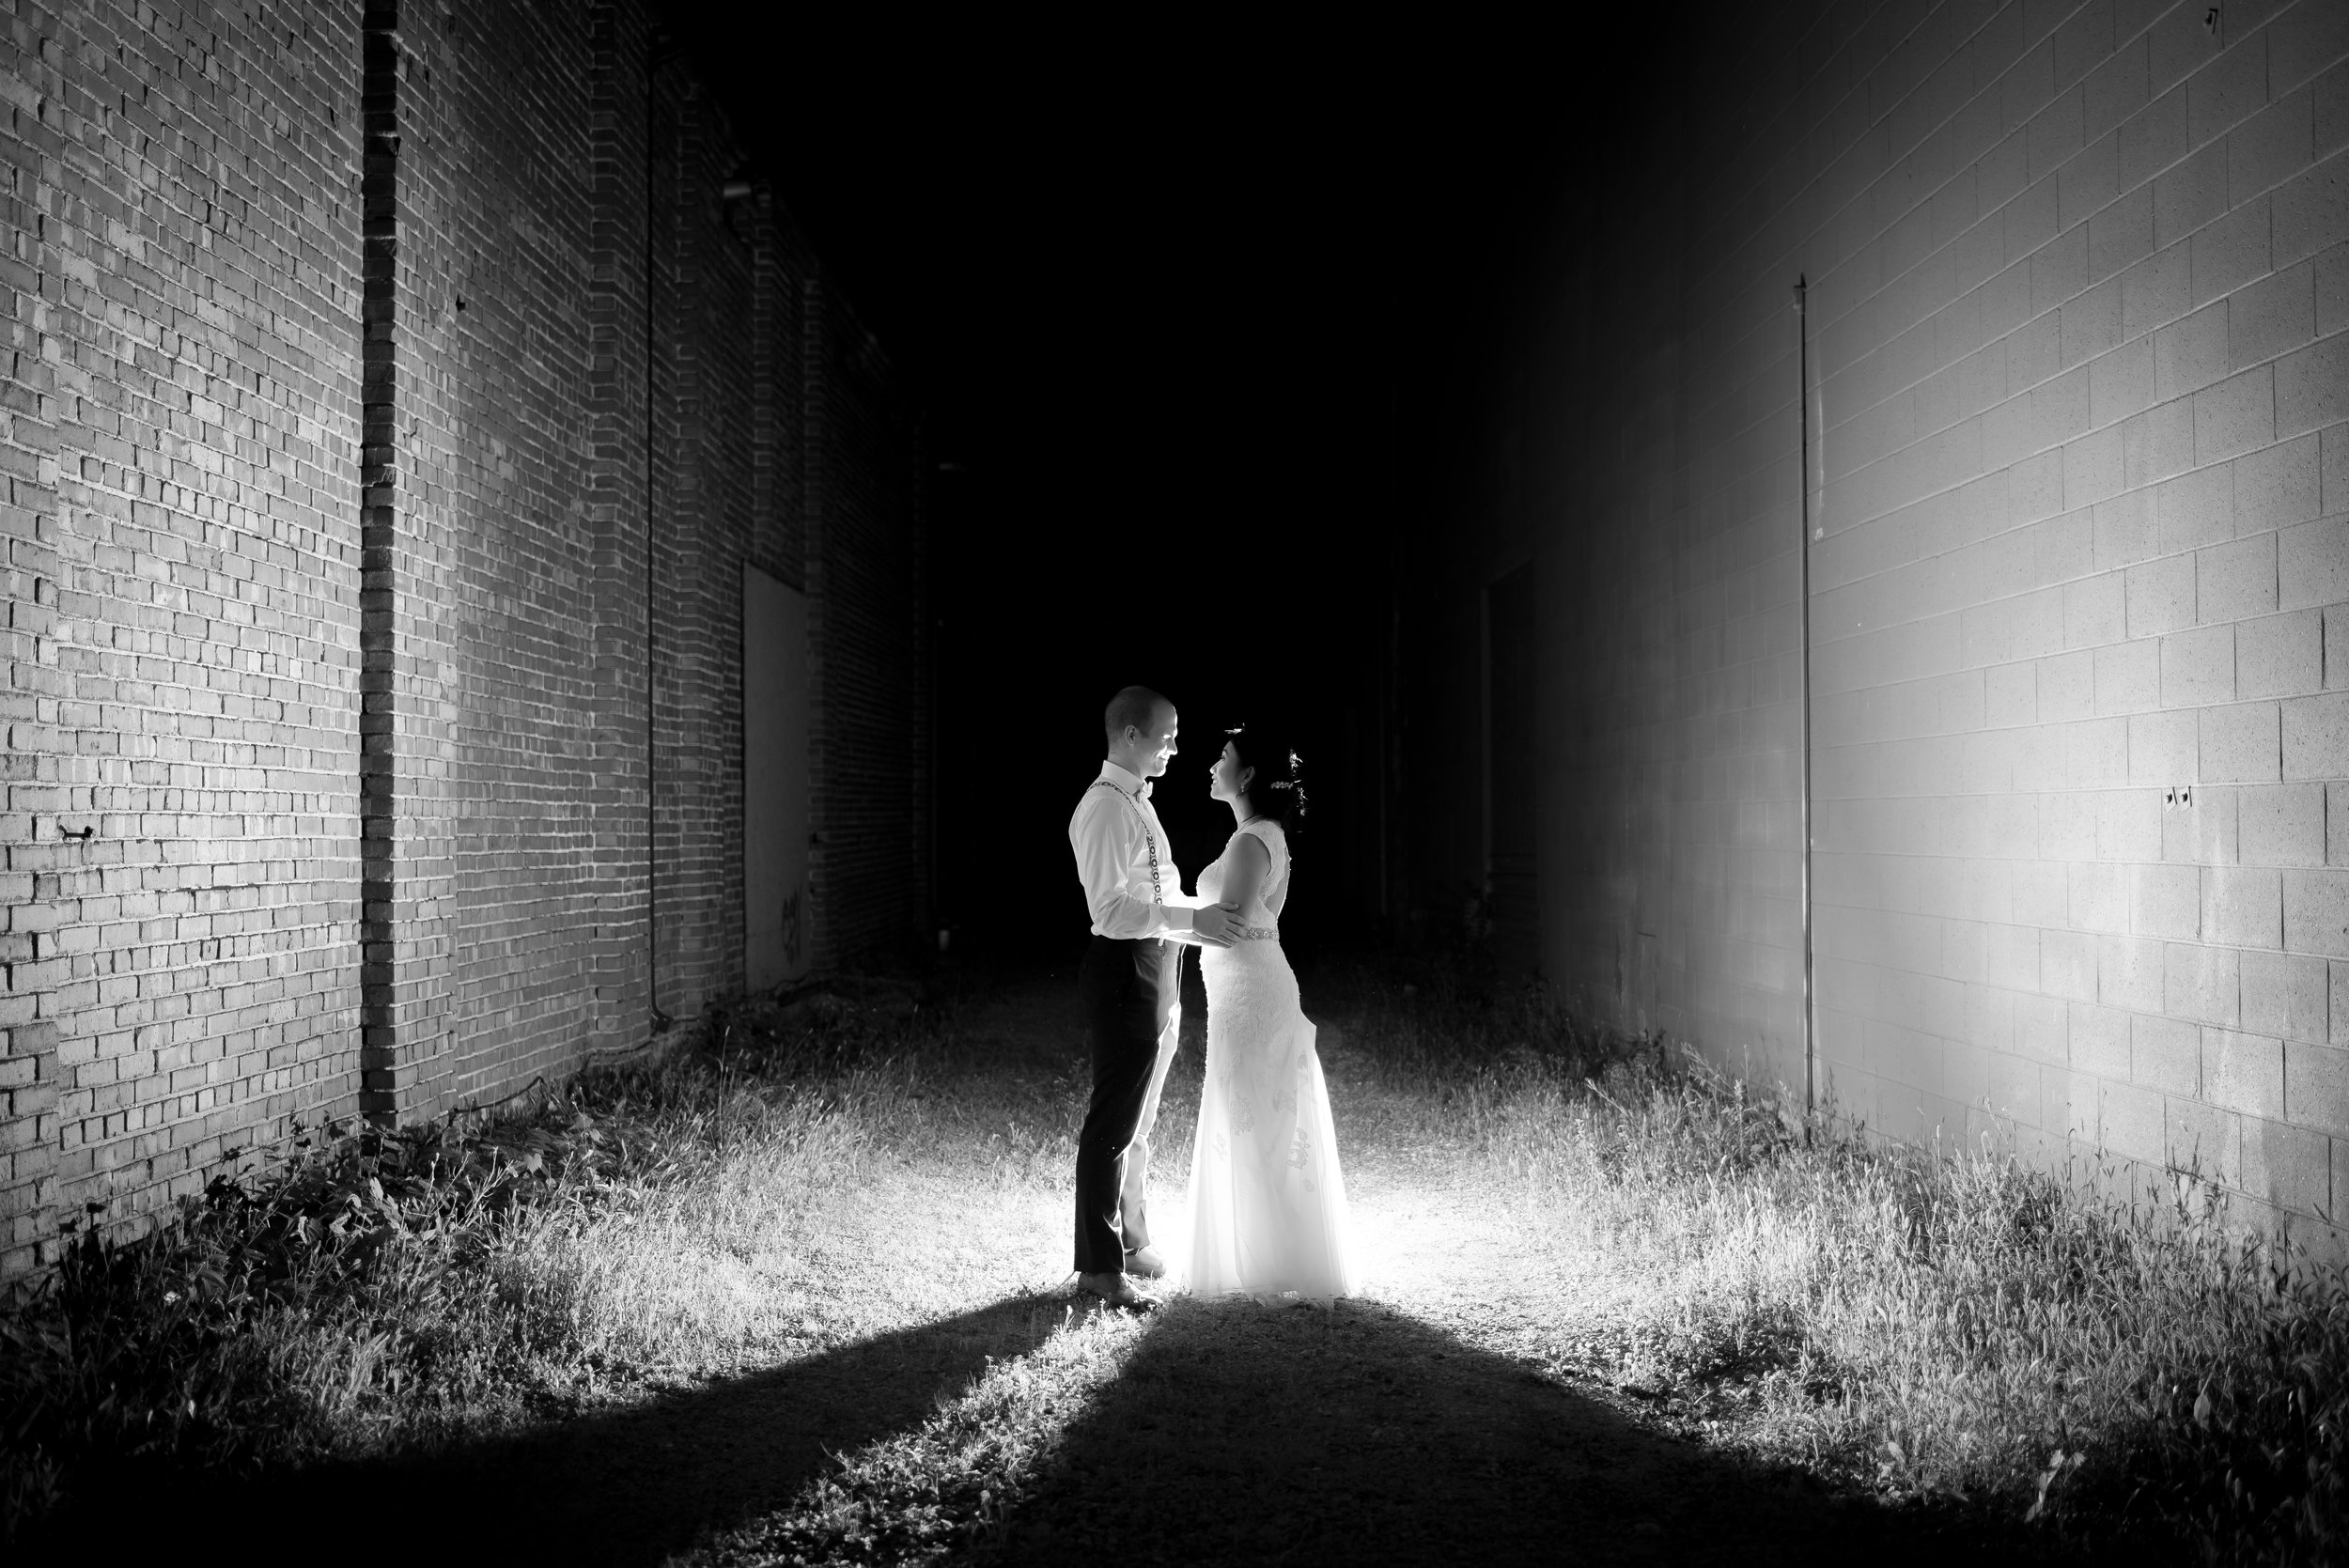 Nighttime Wedding Portrait with Off Camera Flash